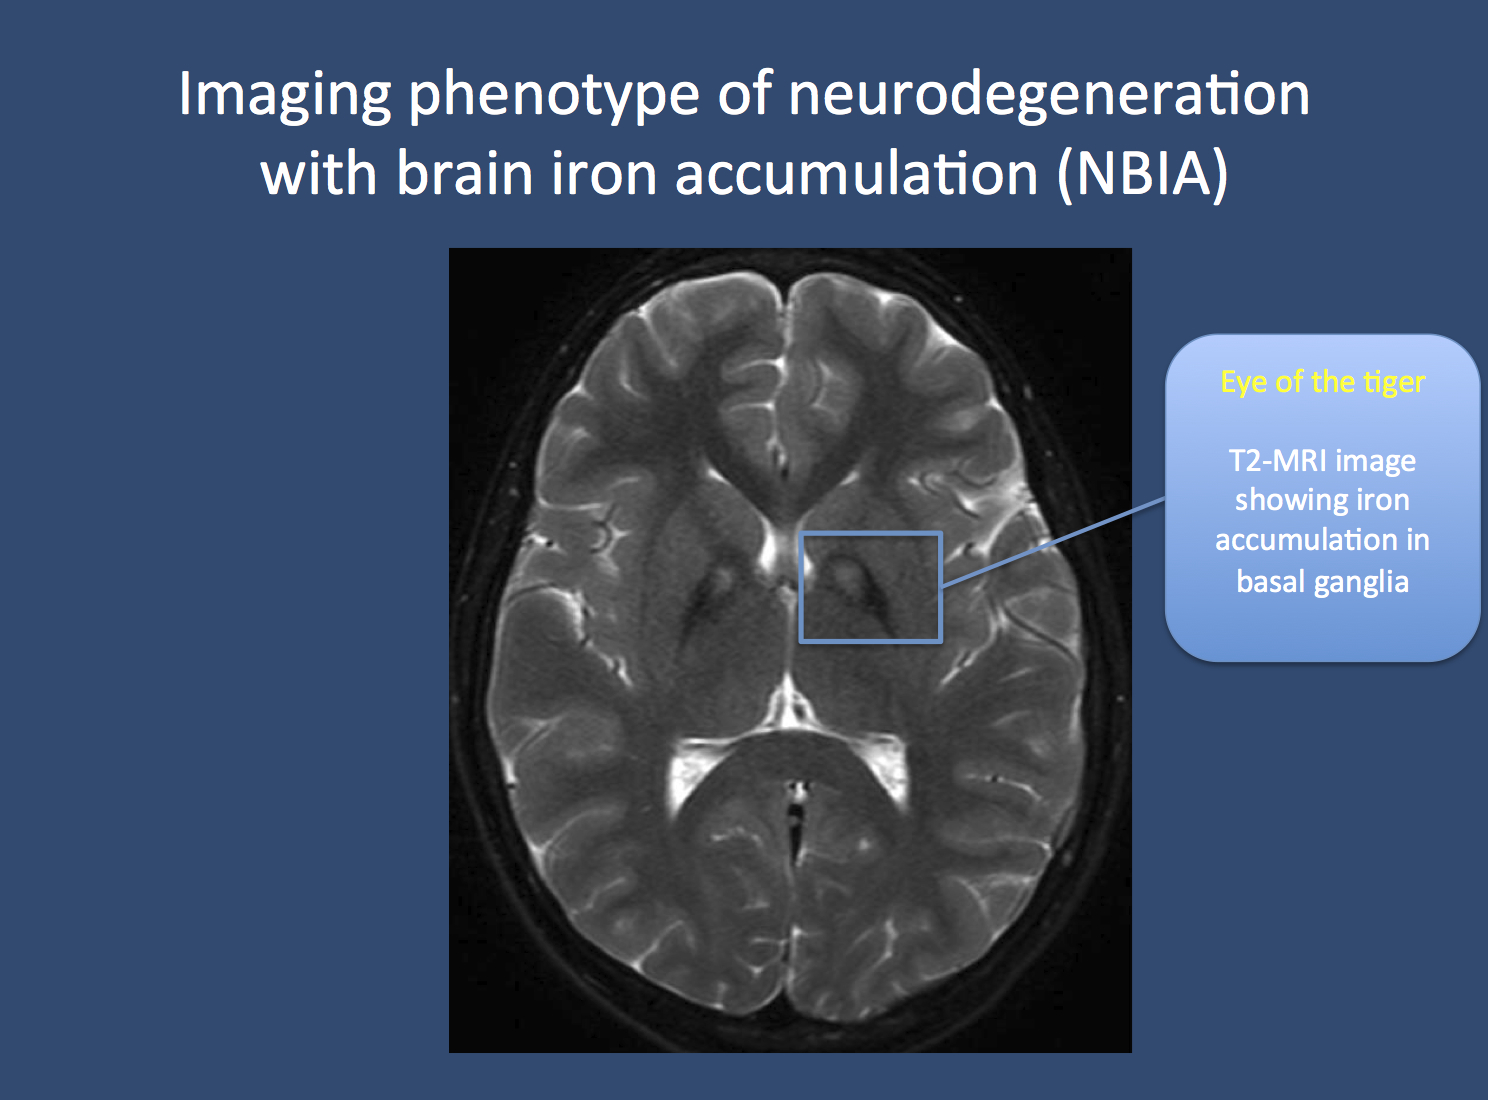 "The eye of the tiger. Pantothenate kinase-associated neurodegeneration (PKAN), formerly known as Hallervorden-Spatz disease, is usually associated with a pathognomonic finding on MRI imaging. Due to the accumulation of iron in the basal ganglia, two black spots can be seen, which is referred to as the ""eye of the tiger"" sign. PKAN is part of a group of disorders referred to as neurodegeneration with brain iron accumulation. Image from Wikimedia commons (http://commons.wikimedia.org/wiki/File:Pkan-basal-ganglia-MRI.JPG), within the framework of the Creative Commons license."